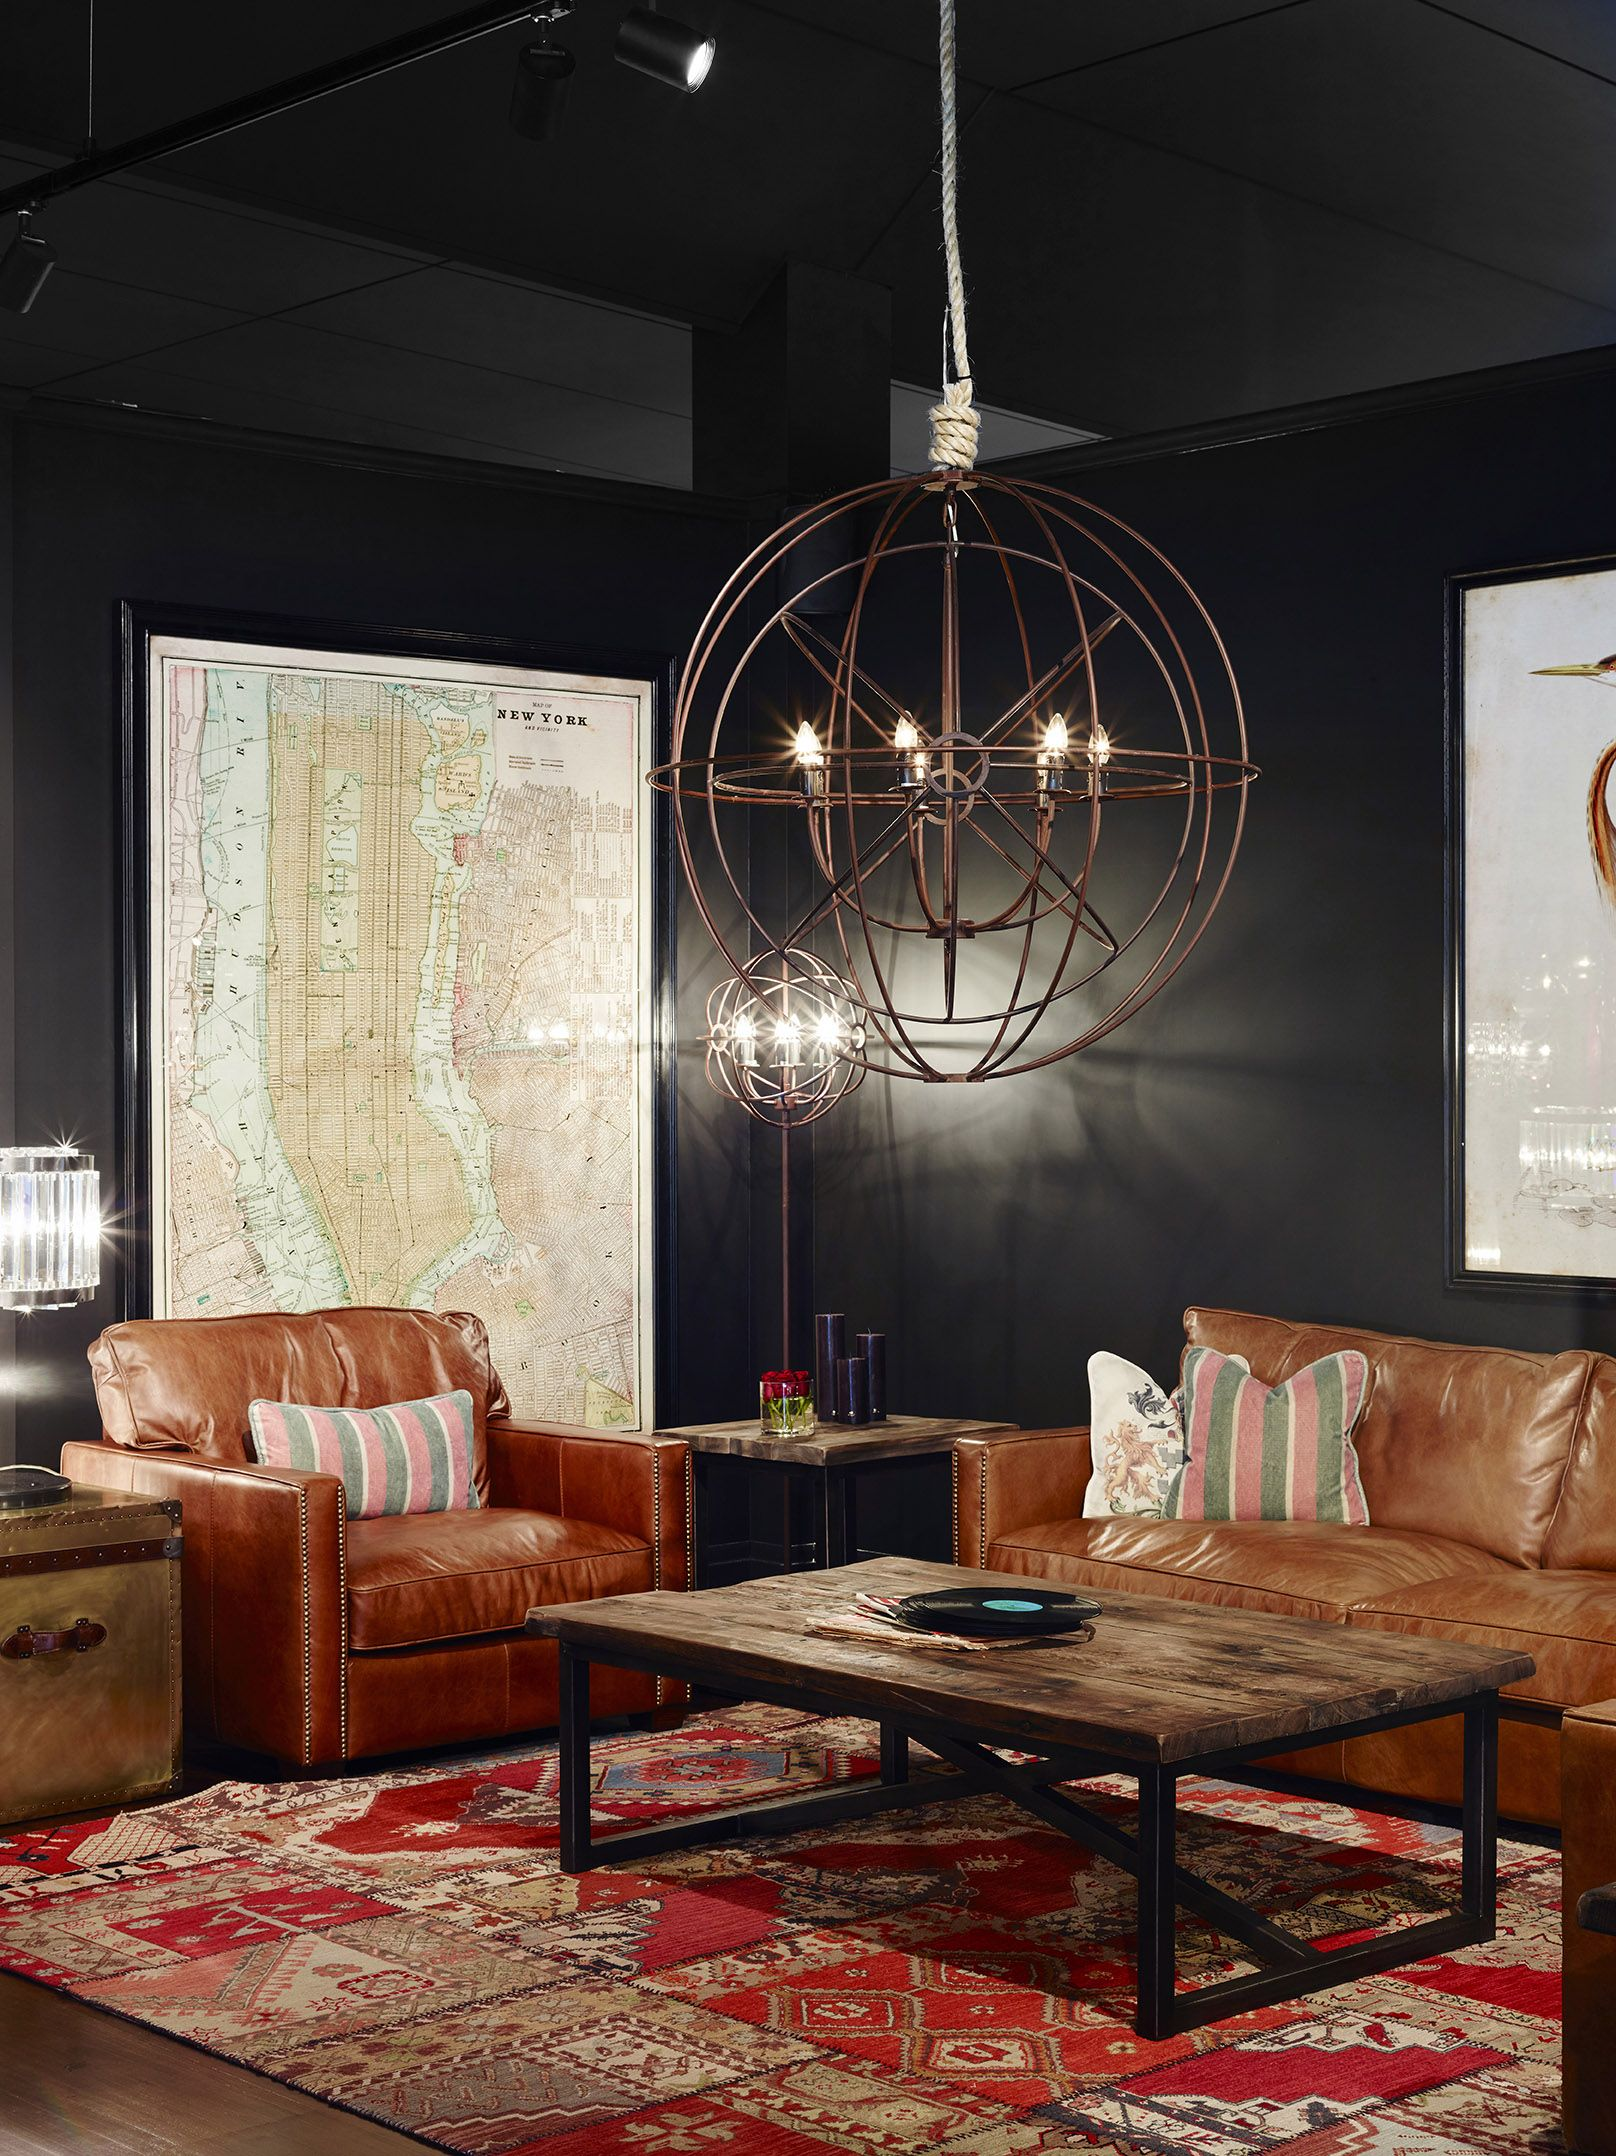 Coco republic double gyro chandelier timothy oulton decor 2 coco republic double gyro chandelier arubaitofo Gallery